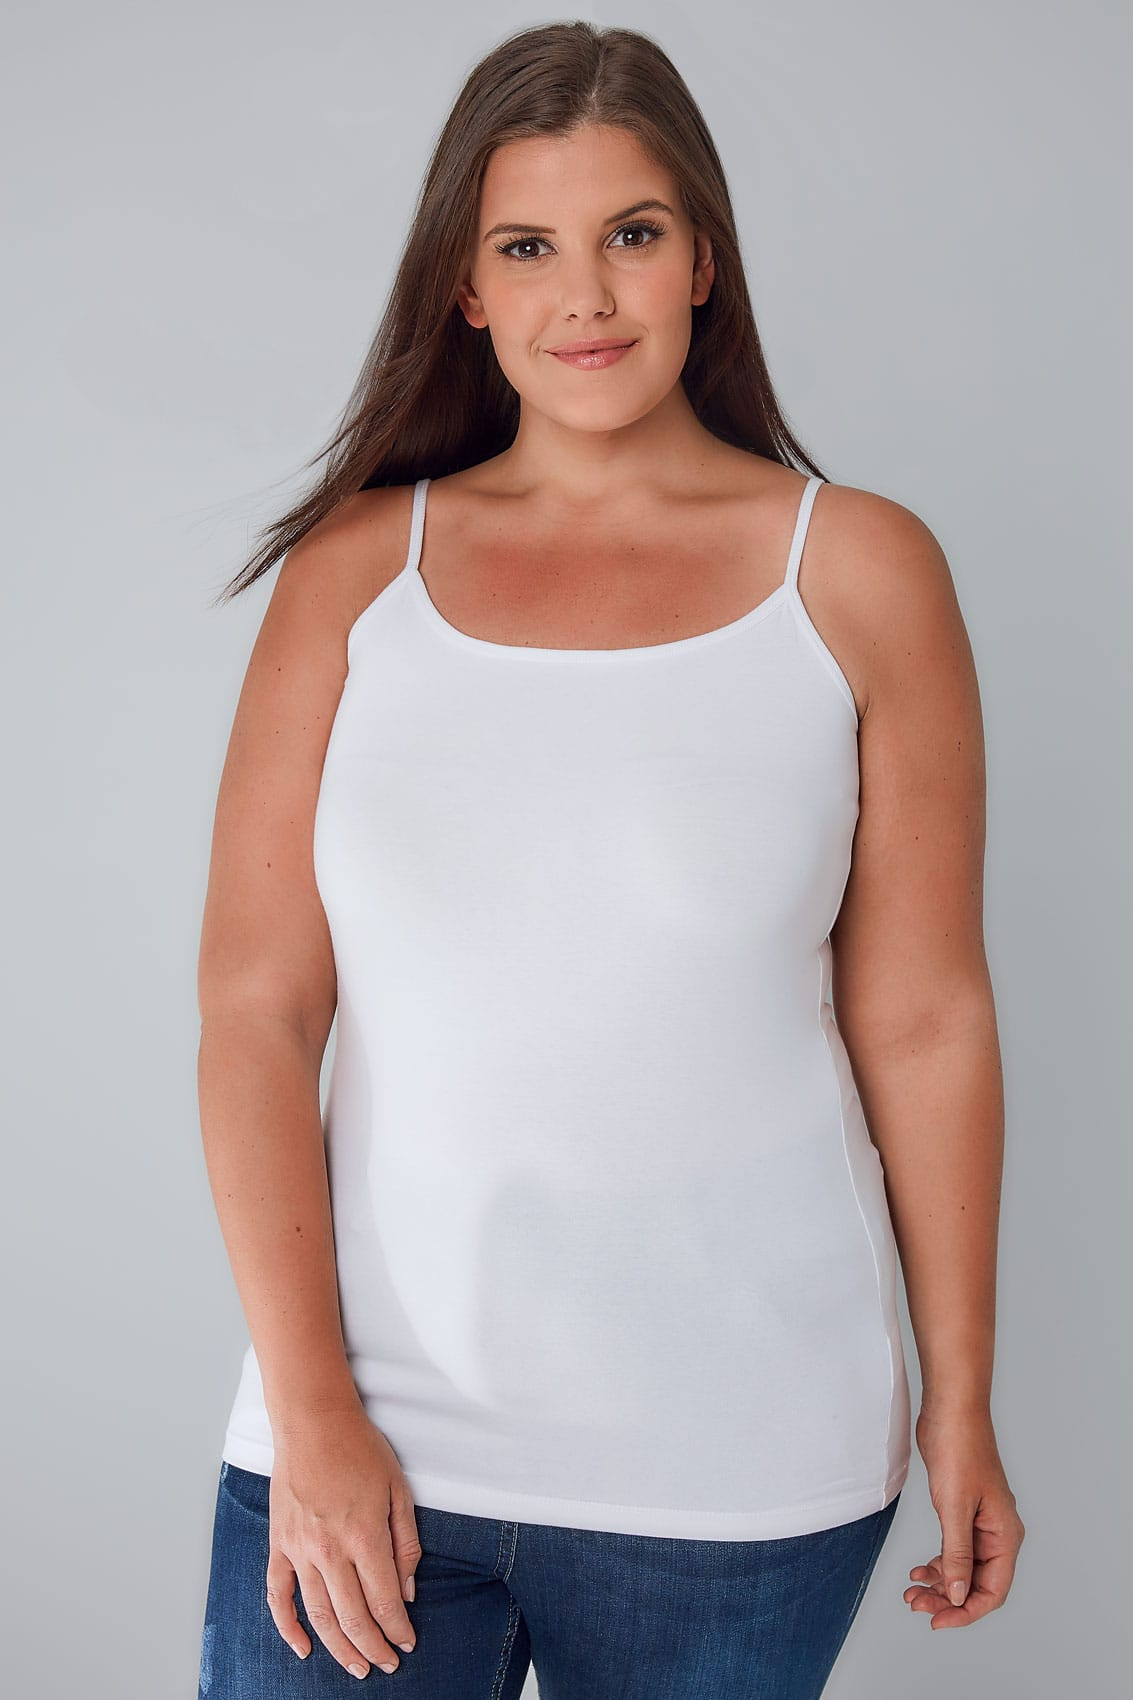 Find Vests & camisoles from the Womens department at Debenhams. Shop a wide range of Tops products and more at our online shop today. Menu White pineapple print camisole top Save. Was £ Now £ Red Herring Red stripe print cotton high neck vest top .